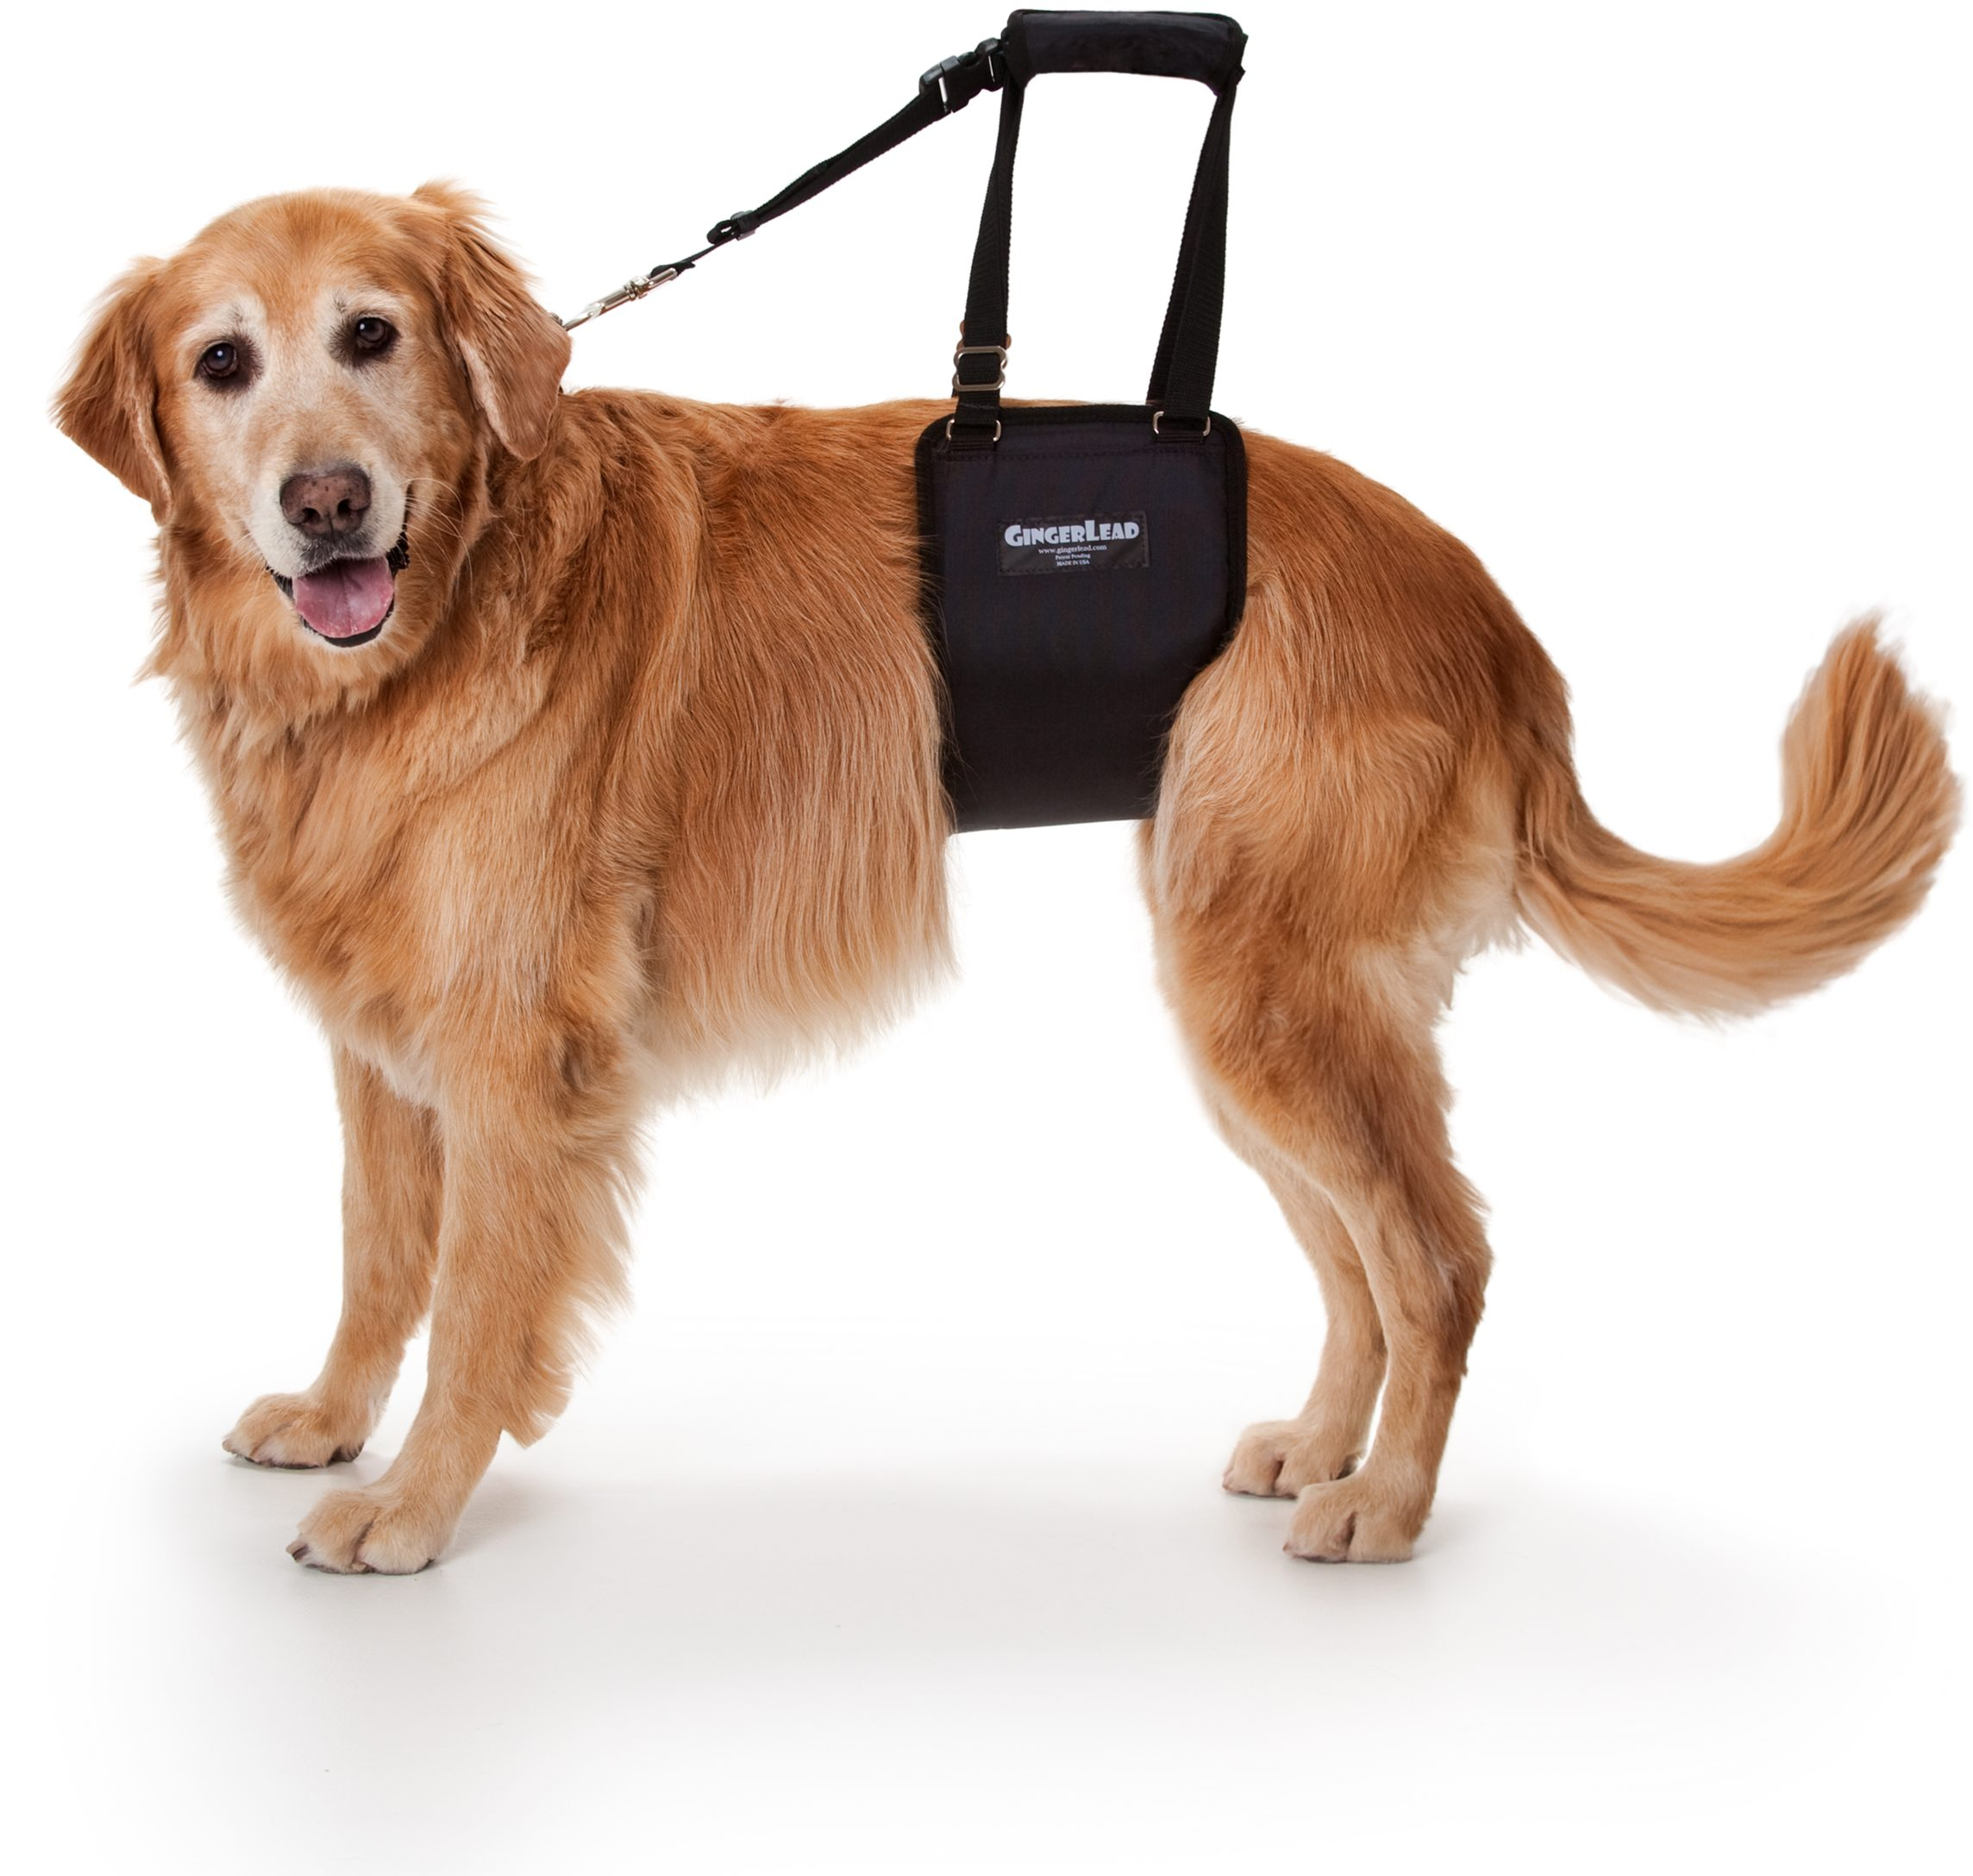 GingerLead Dog Sling Large Female